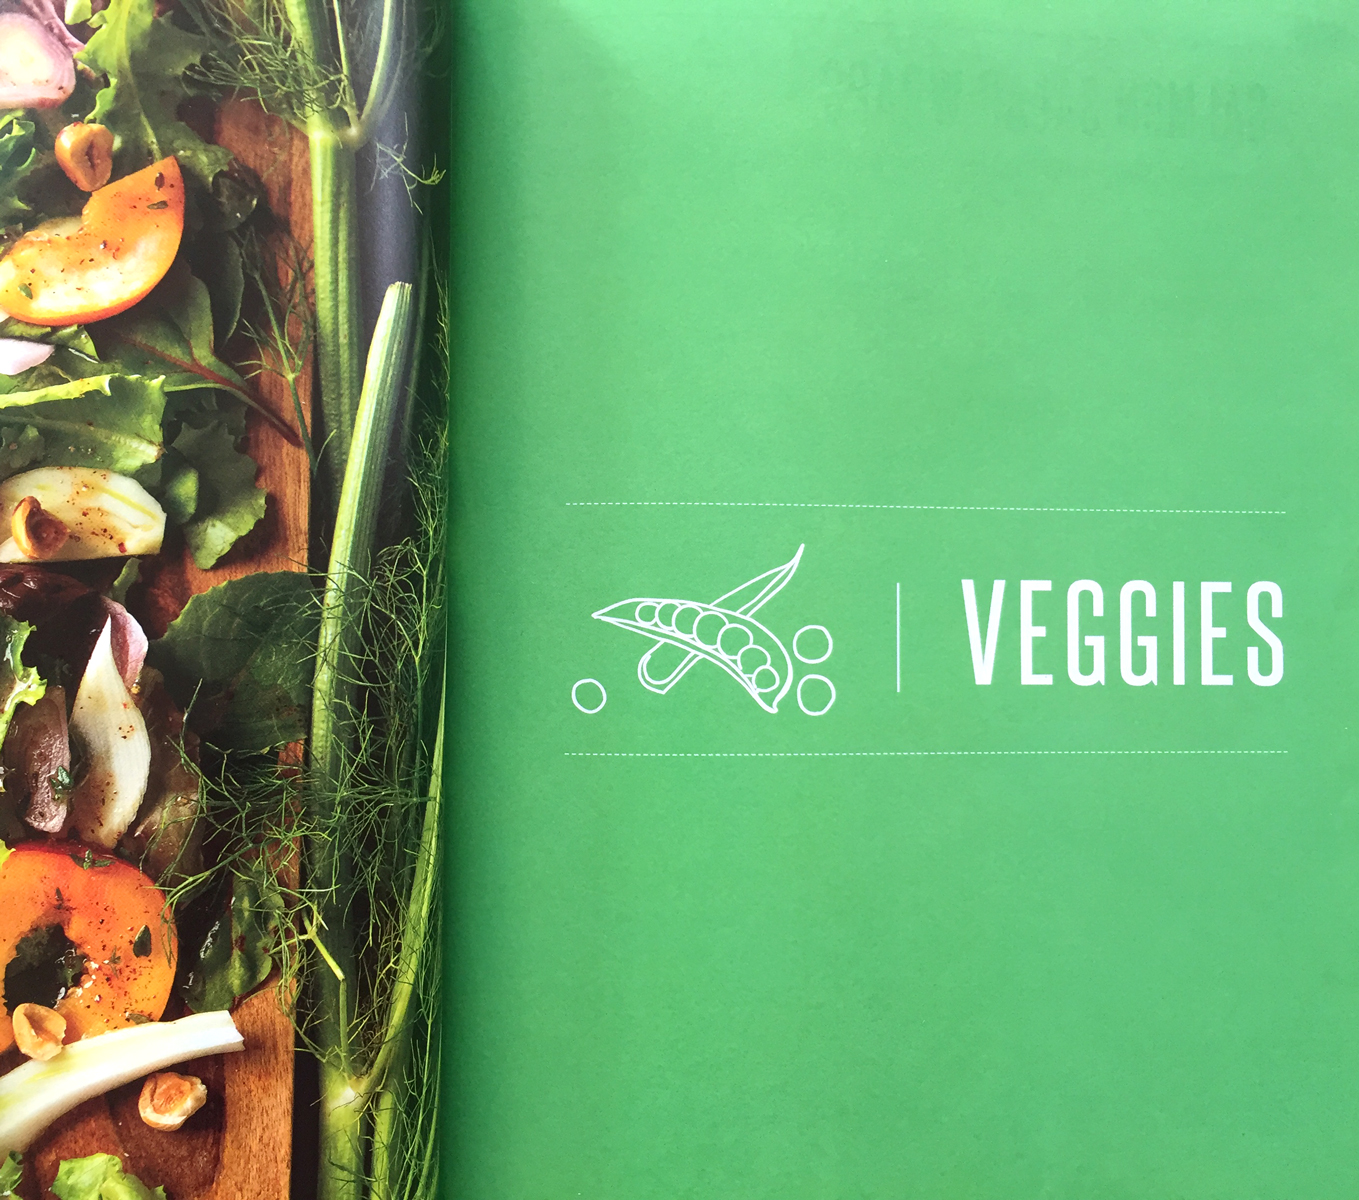 veggies-illustration-pm-cookbook-design